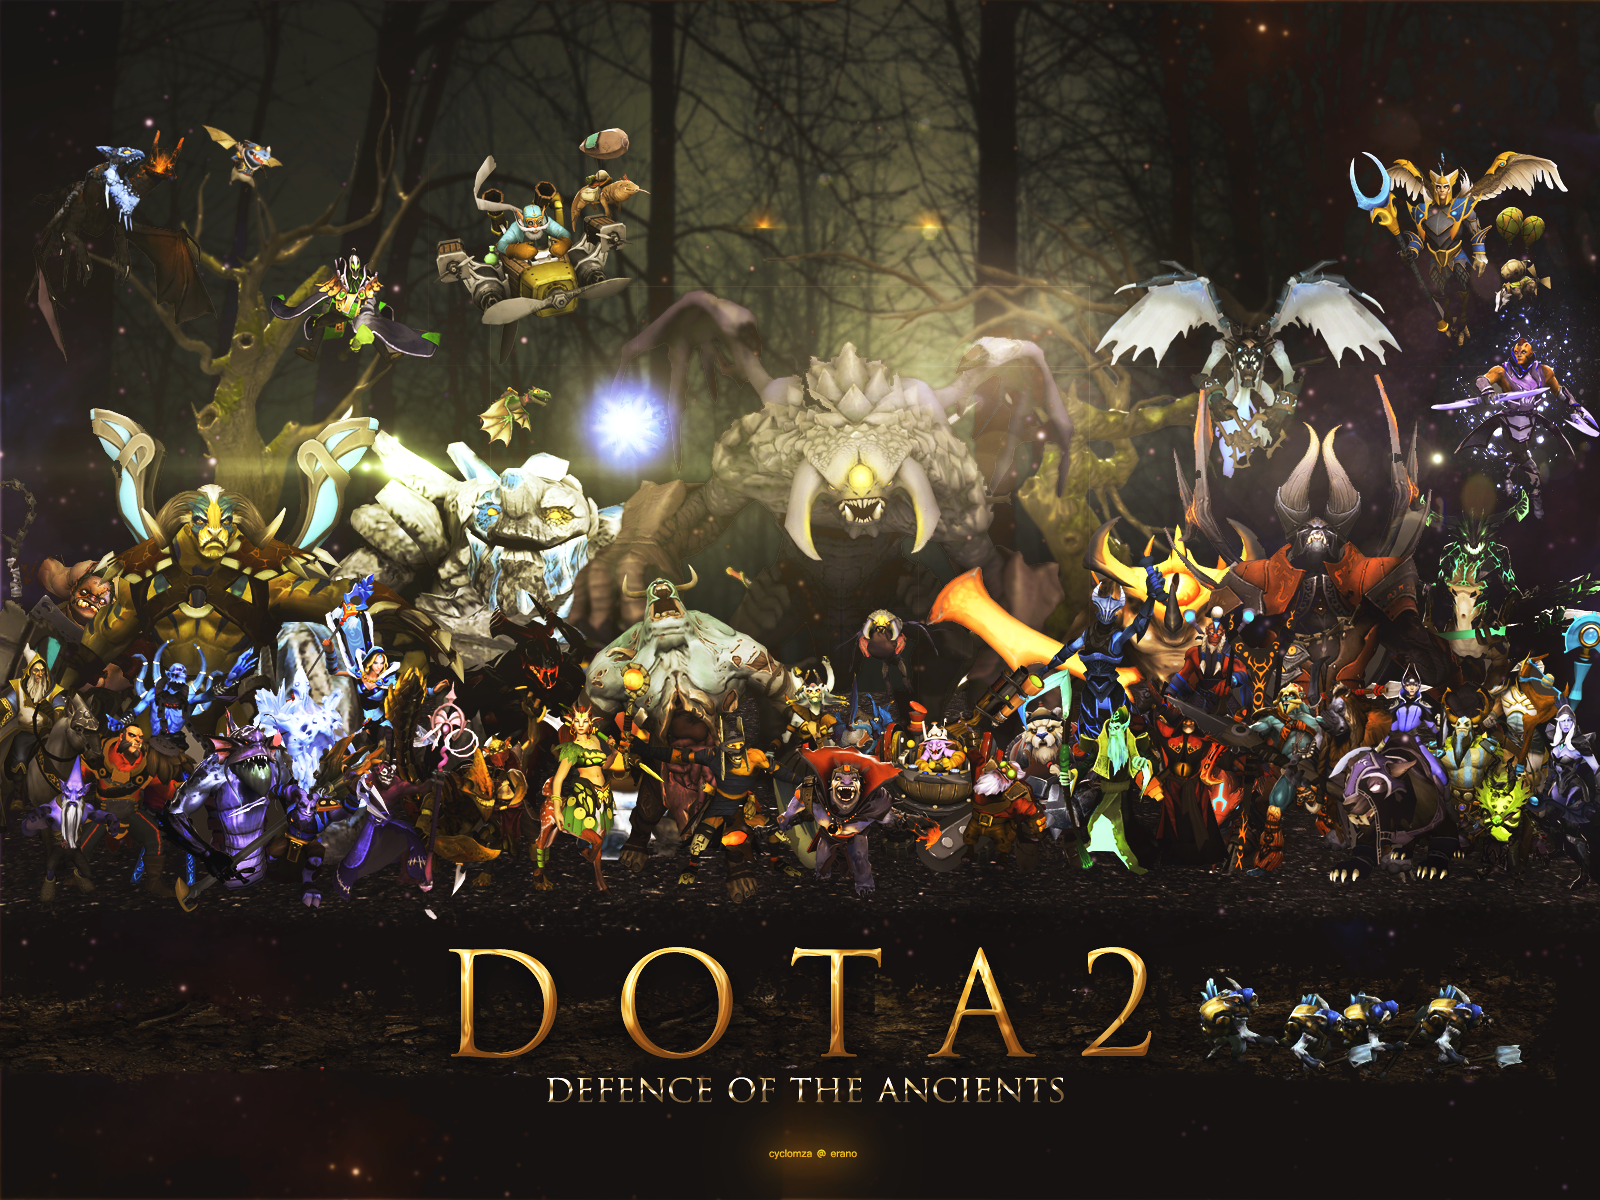 Free Download Dota 2 Wallpaper By Cyclomza 1600x1200 For Your